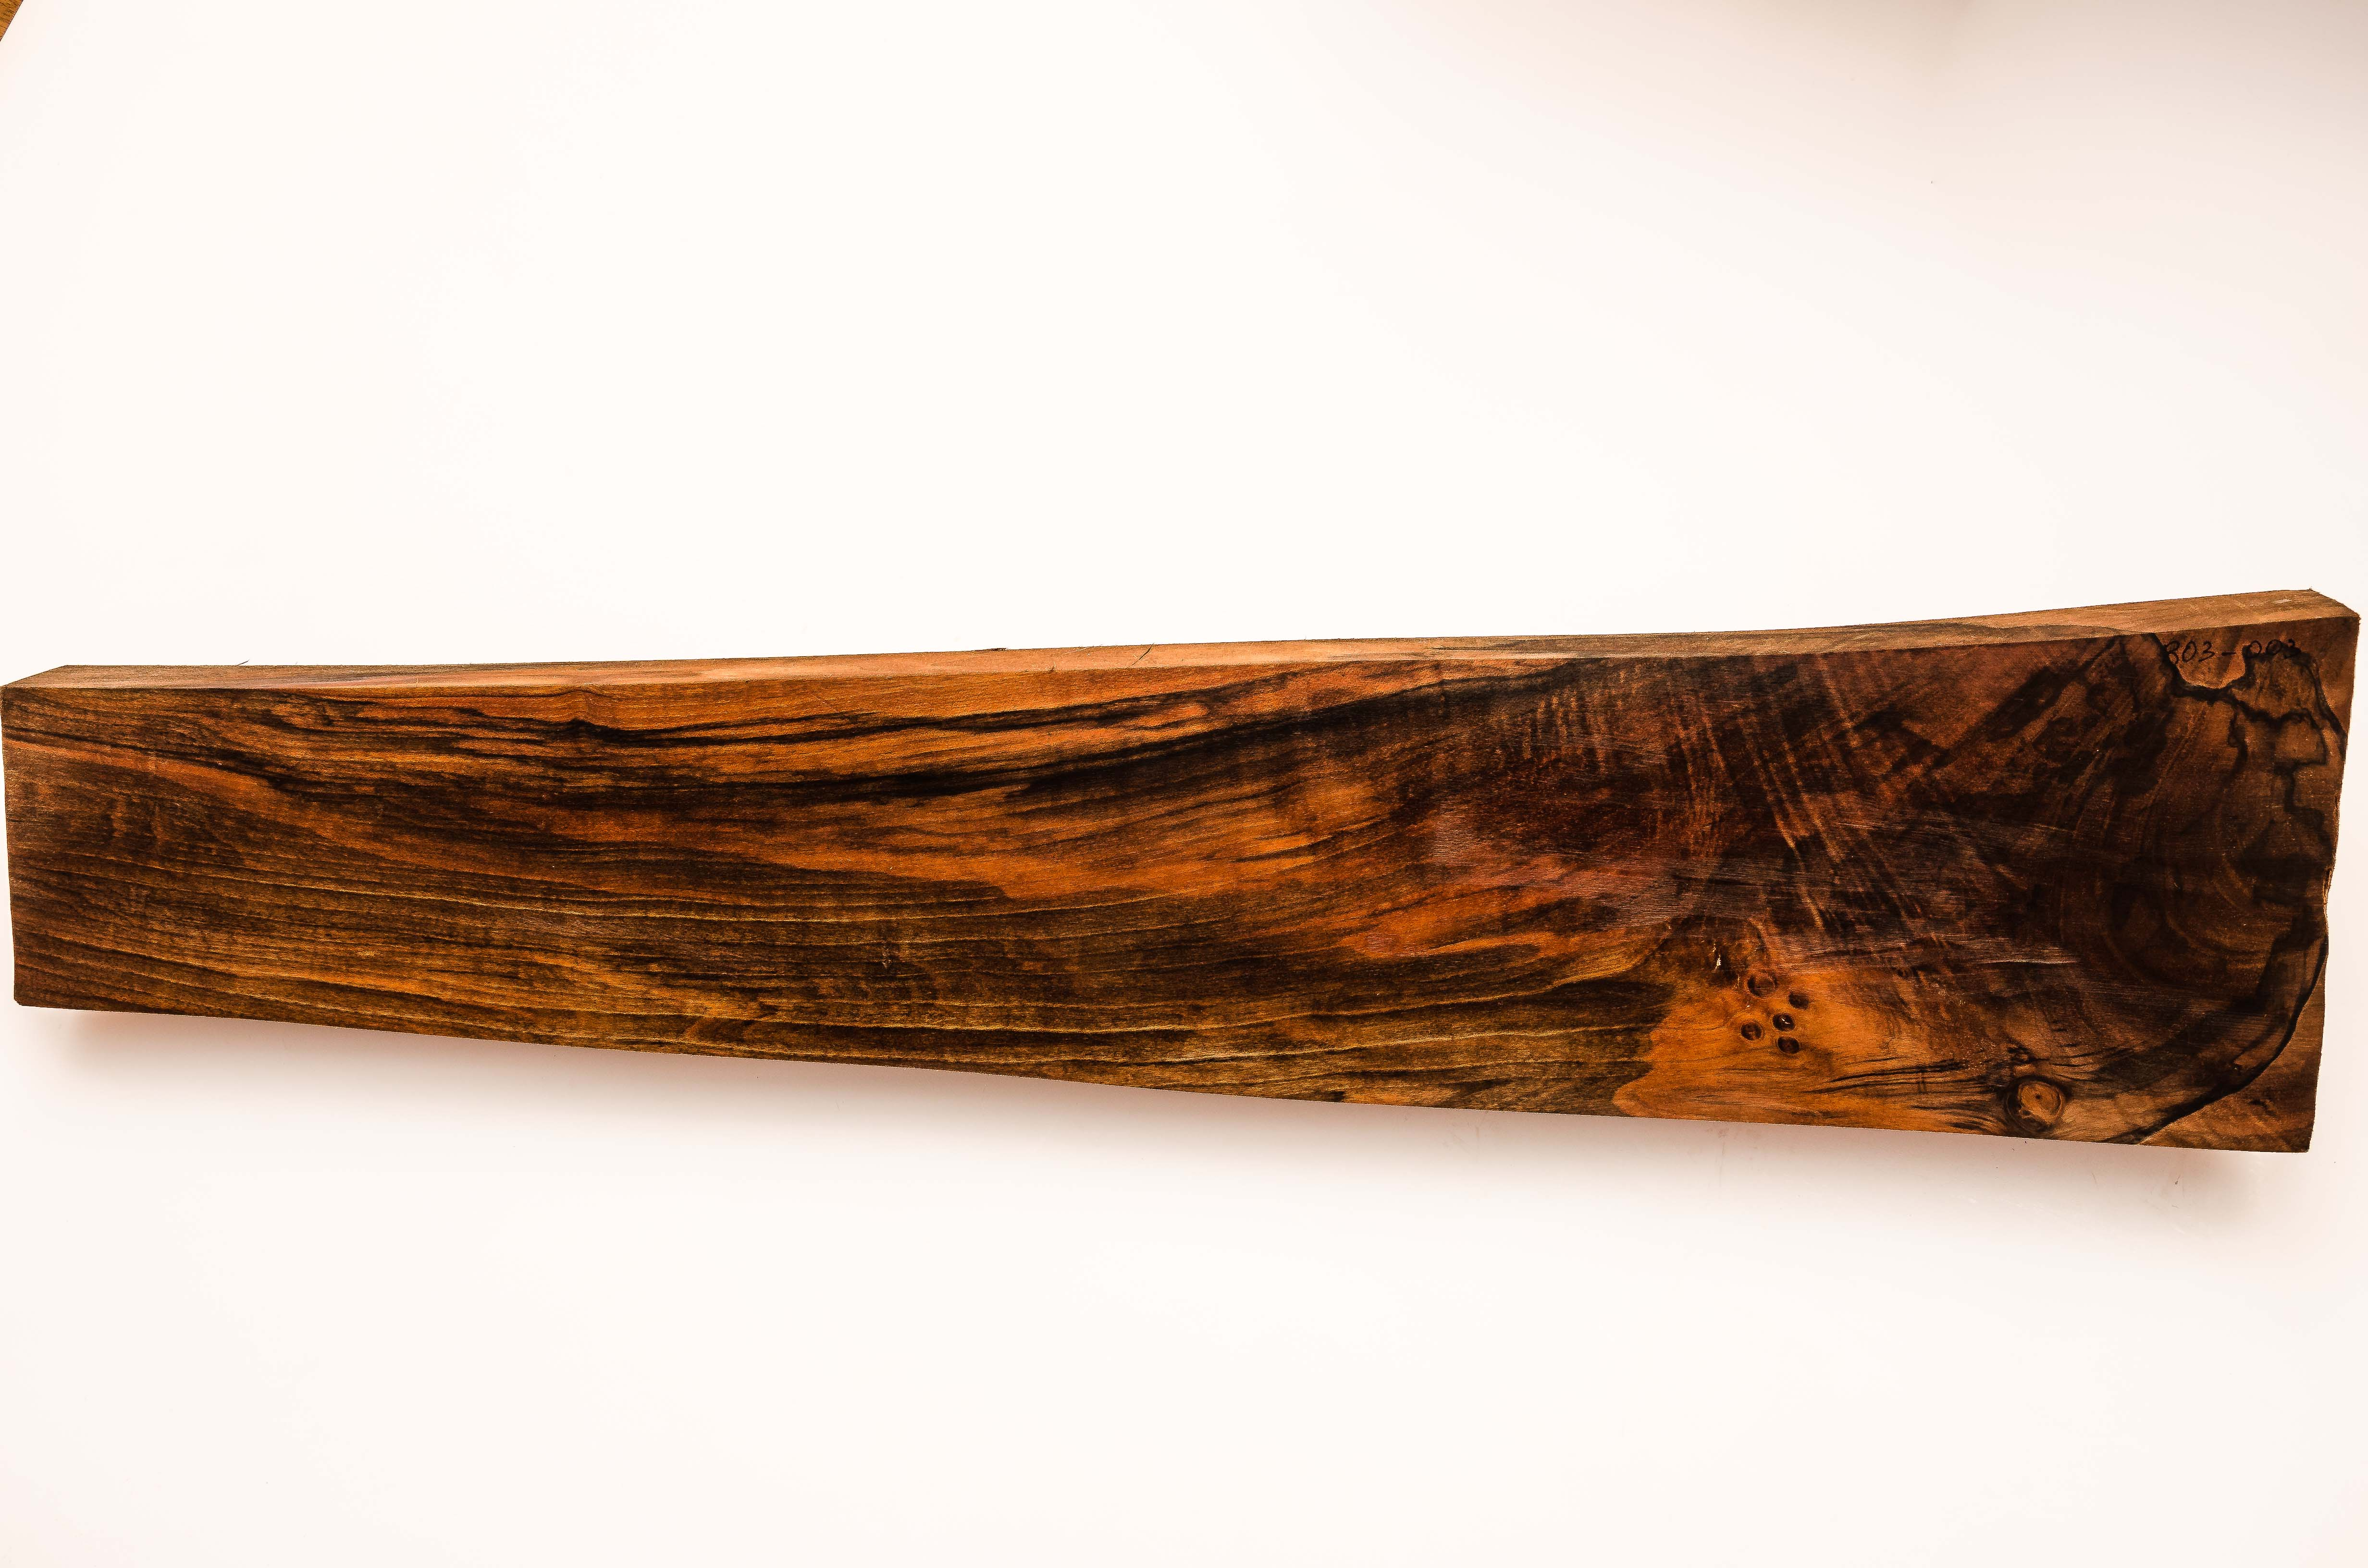 walnut_stock_blanks_for_guns_and_rifles-0656